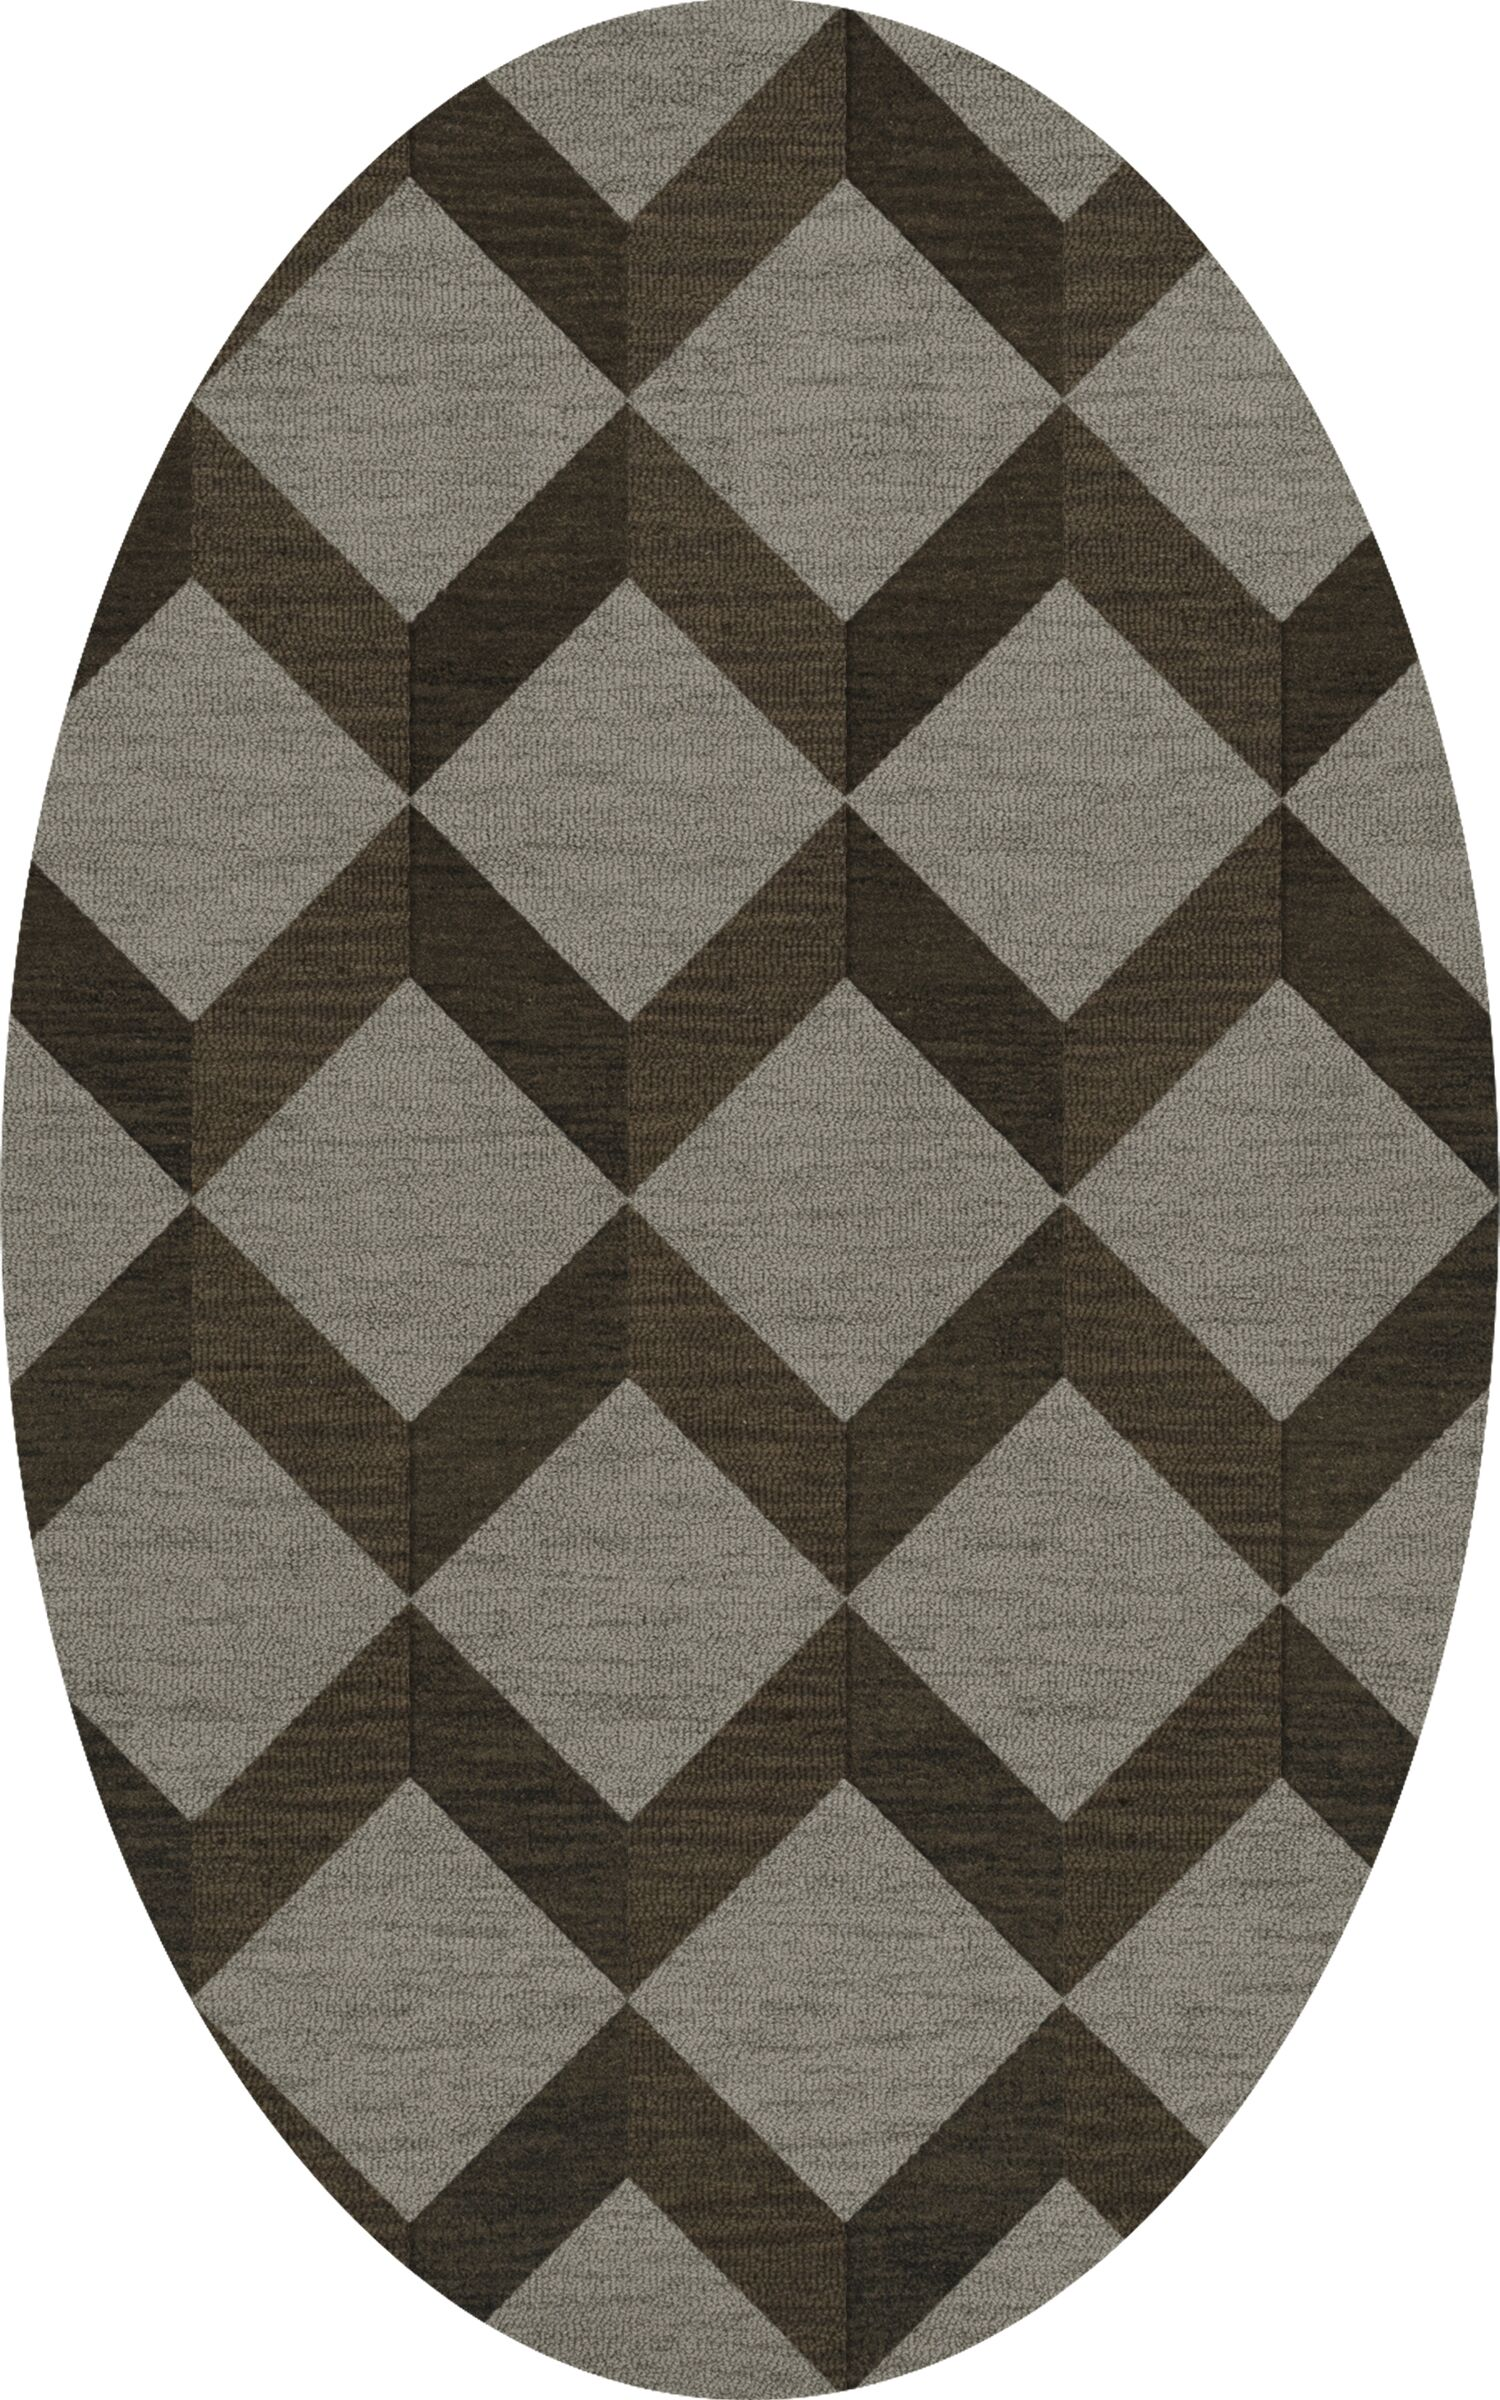 Bella Machine Woven Wool Brown/Gray Area Rug Rug Size: Oval 4' x 6'